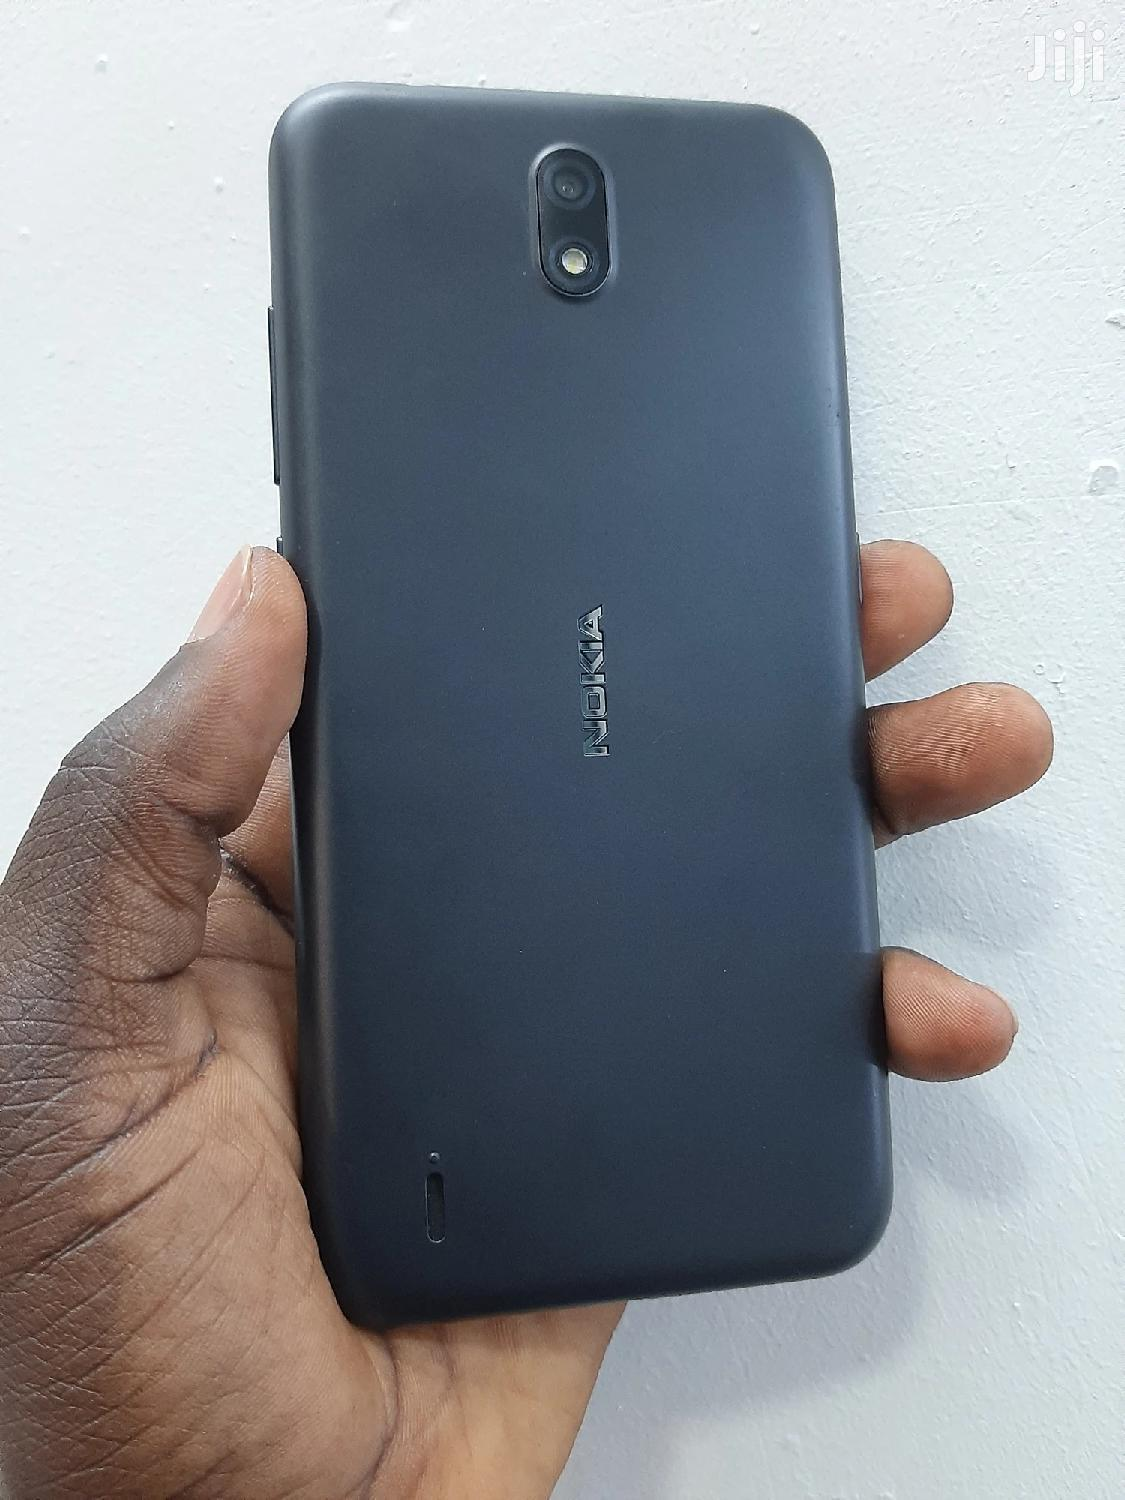 Nokia C1 16 GB Black